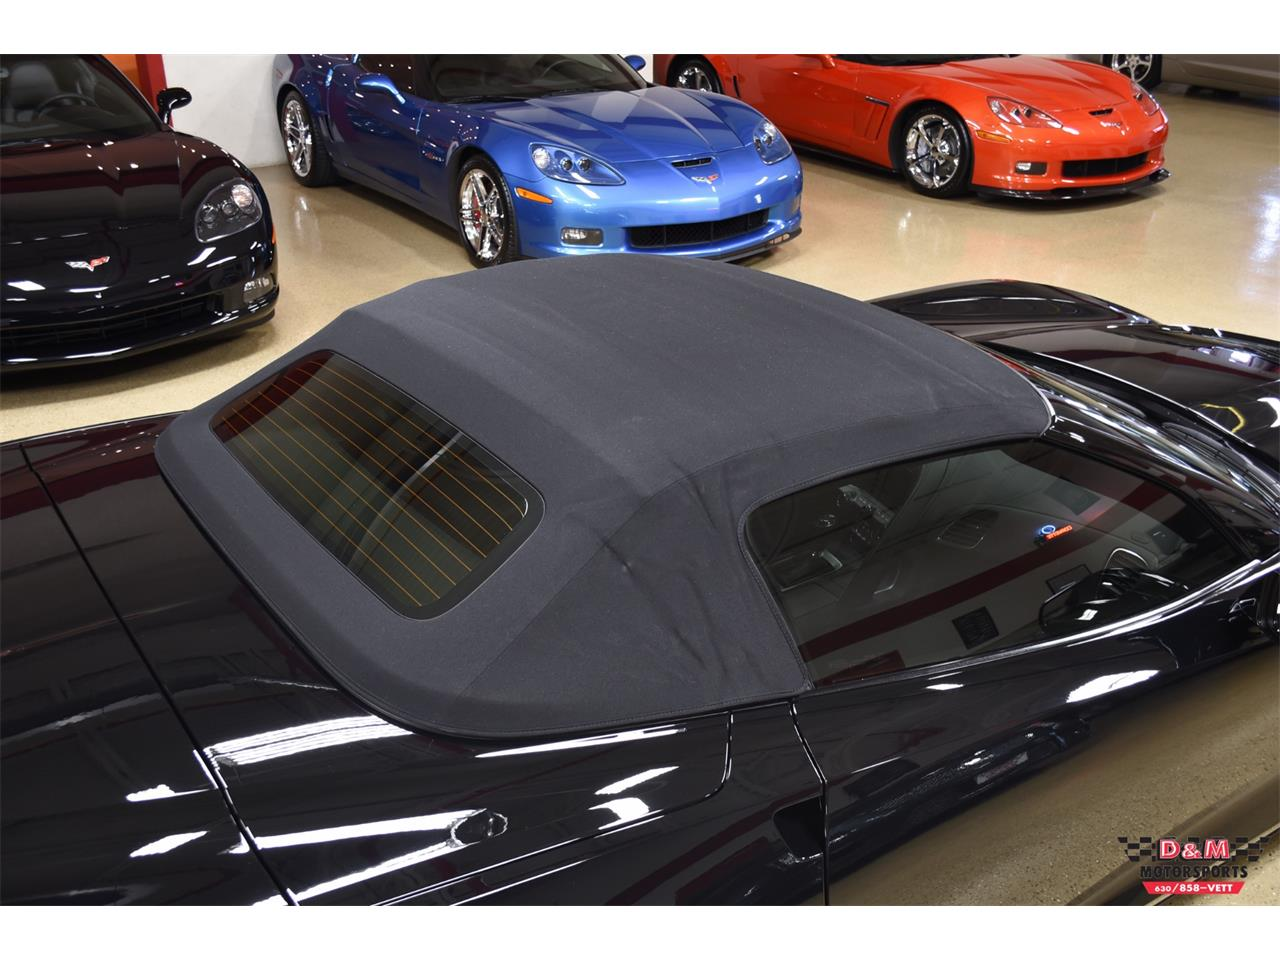 Large Picture of 2015 Corvette located in Illinois - $50,995.00 Offered by D & M Motorsports - PZ21